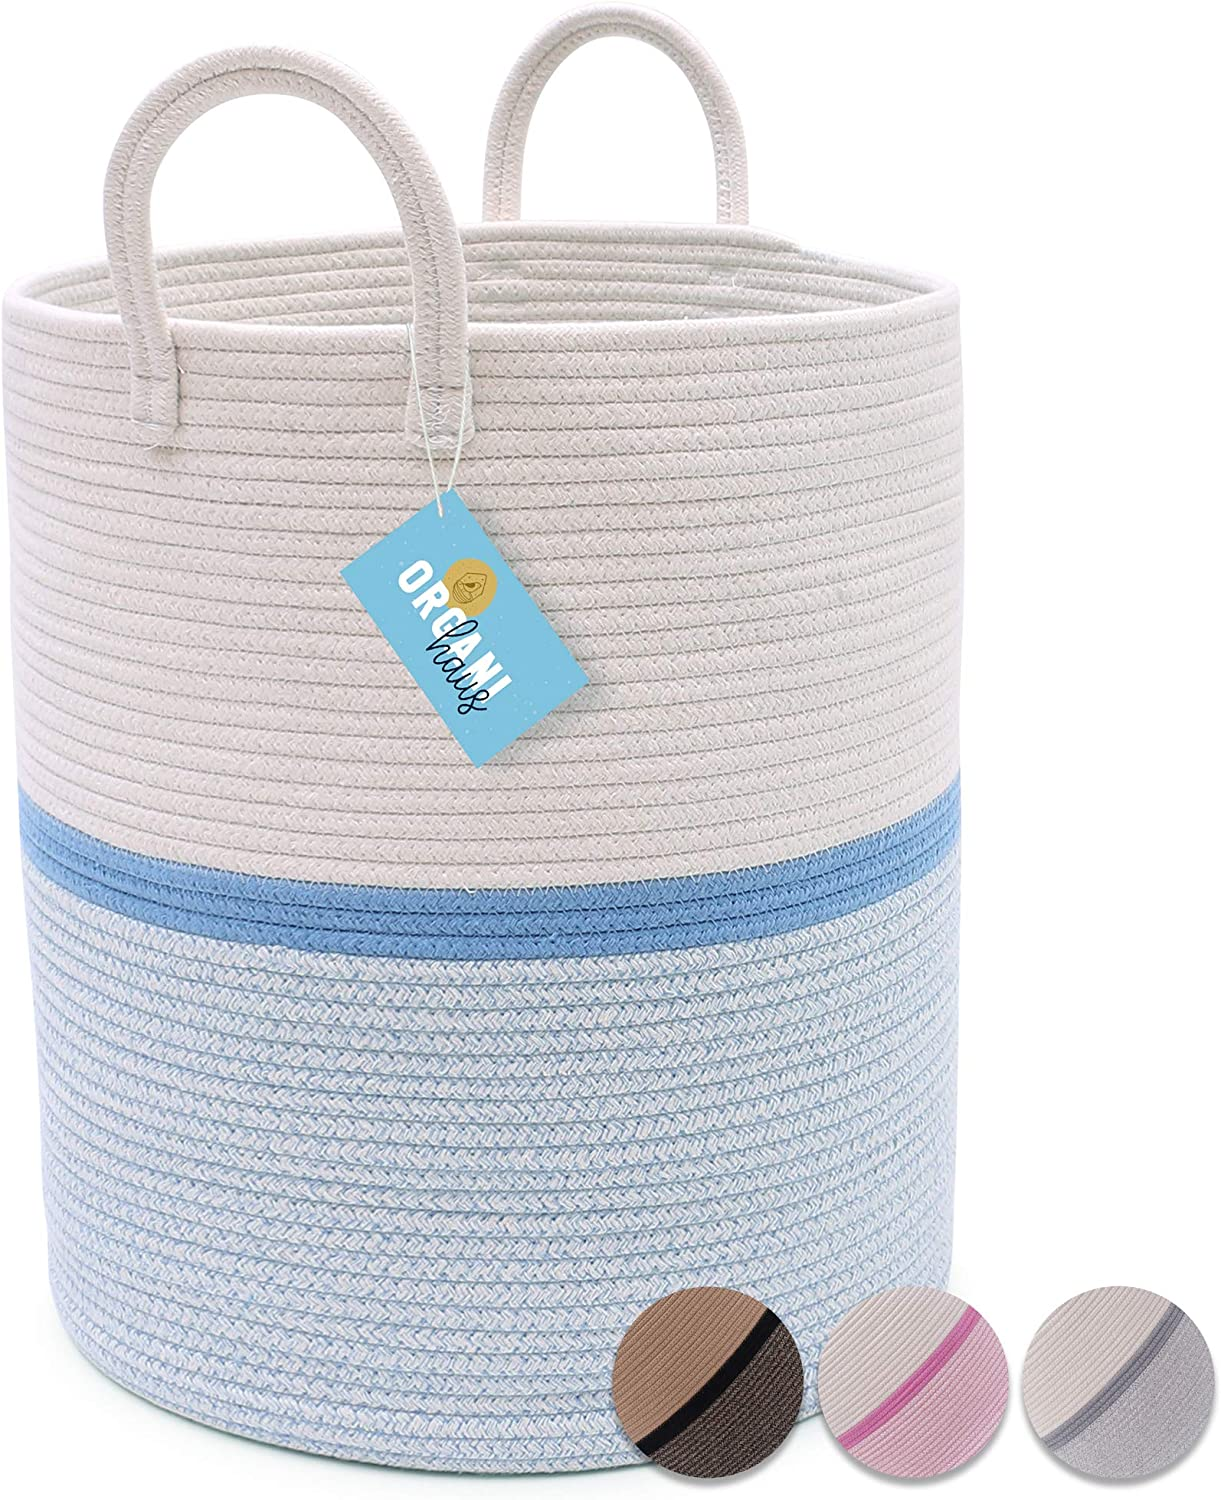 "OrganiHaus Large Blue Nursery Basket of Natural Cotton Rope Woven with Multiple Blended Colors | Perfect for Laundry, Toys, Baby Clothing, Diapers, Storage | Stylish 15""x18"" Baby Hamper Basket"